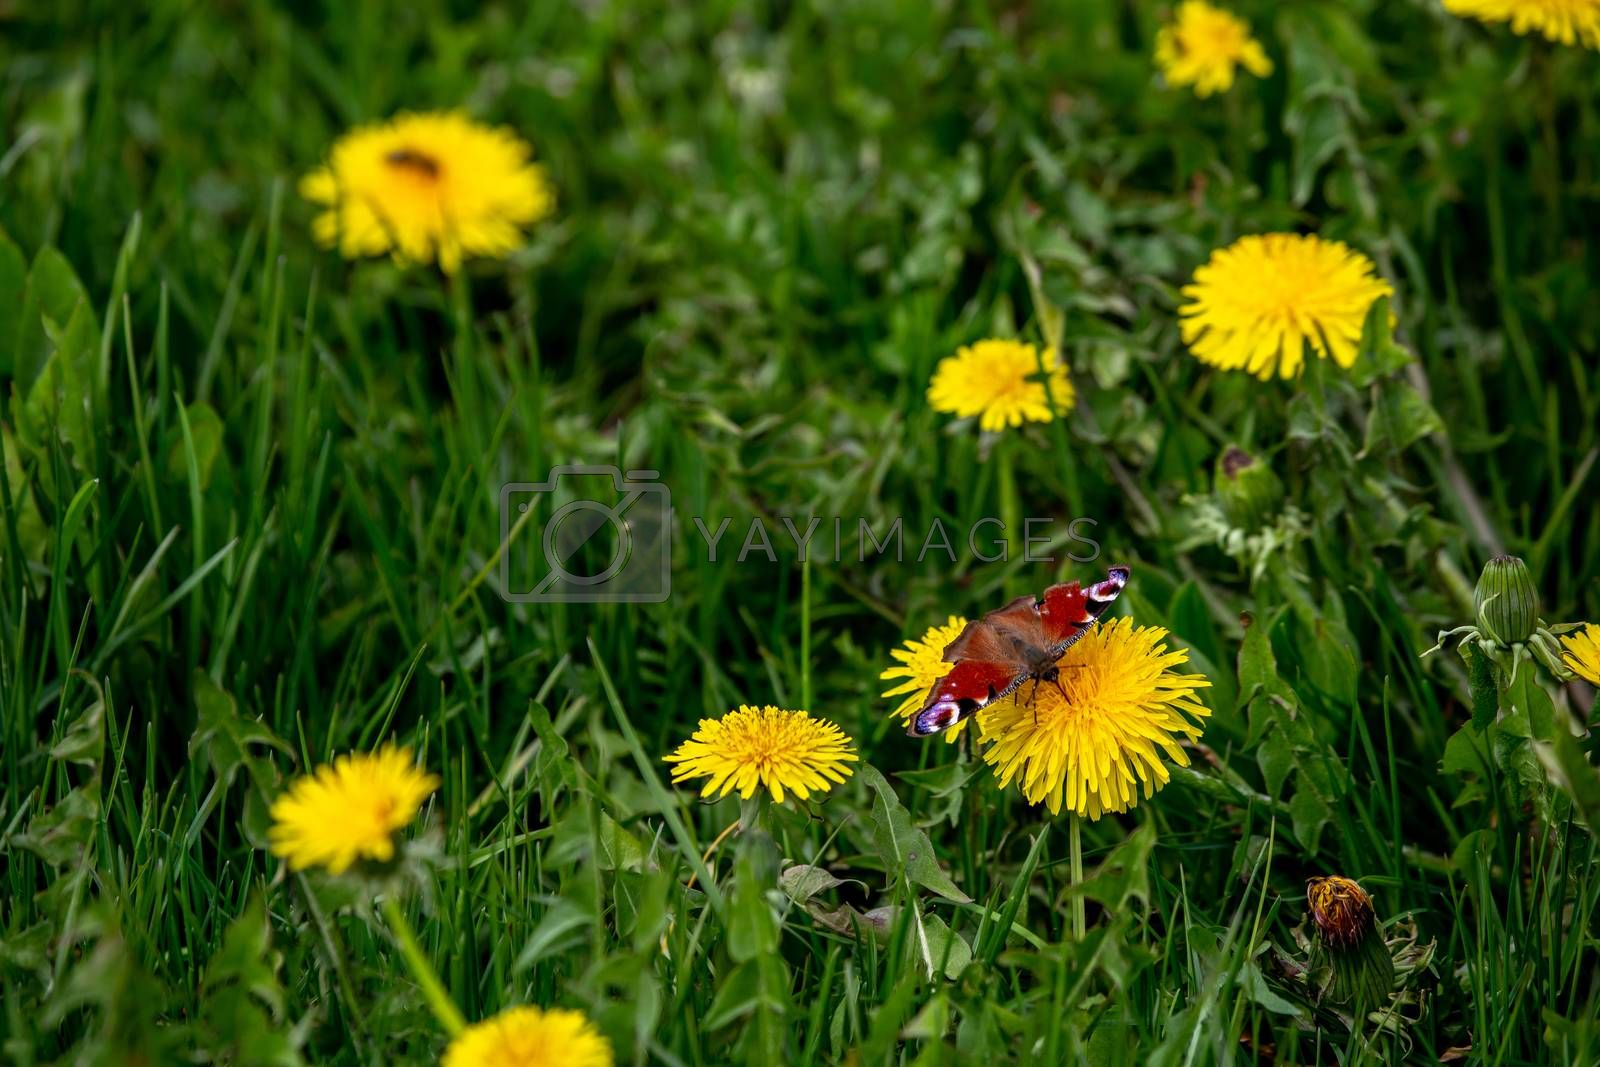 Butterfly in a meadow with yellow dandelions. Blooming yellow dandelions among green grass on meadow in early summer. Green meadow covered with yellow dandelions at spring.